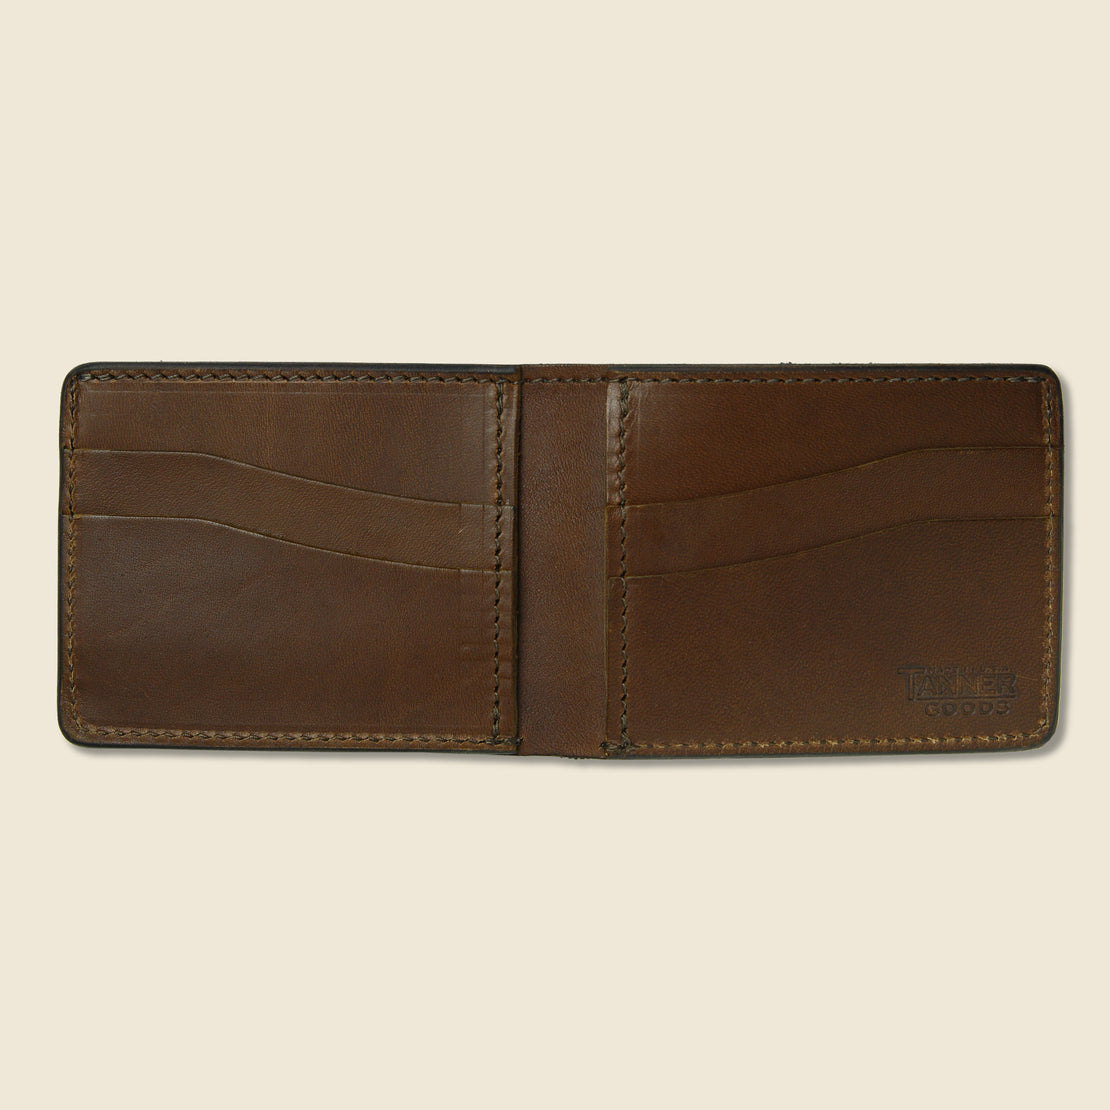 Utility Bifold Wallet - Dark Oak - Tanner - STAG Provisions - Accessories - Wallets